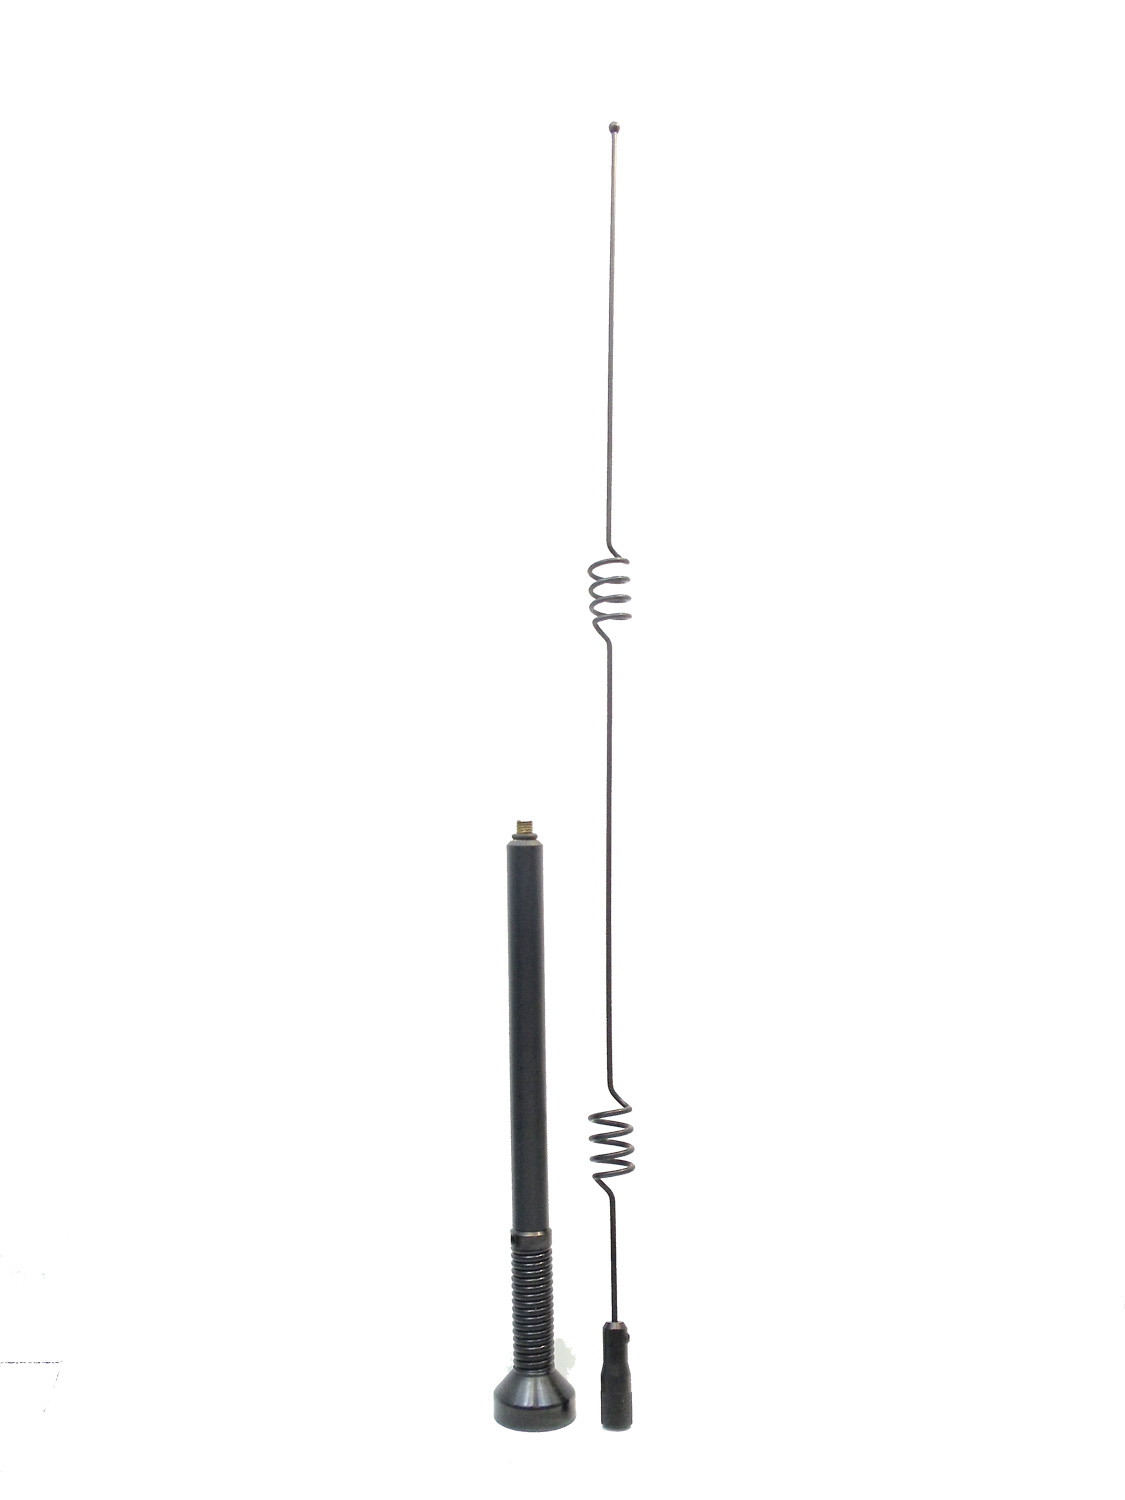 BMUF8035 - MAXRAD 806-866 MHZ BLACK 125 WATT 5DB ELEVATED OPEN COIL FACTORY TUNED ANTENNA WITH SHOCK SPRING